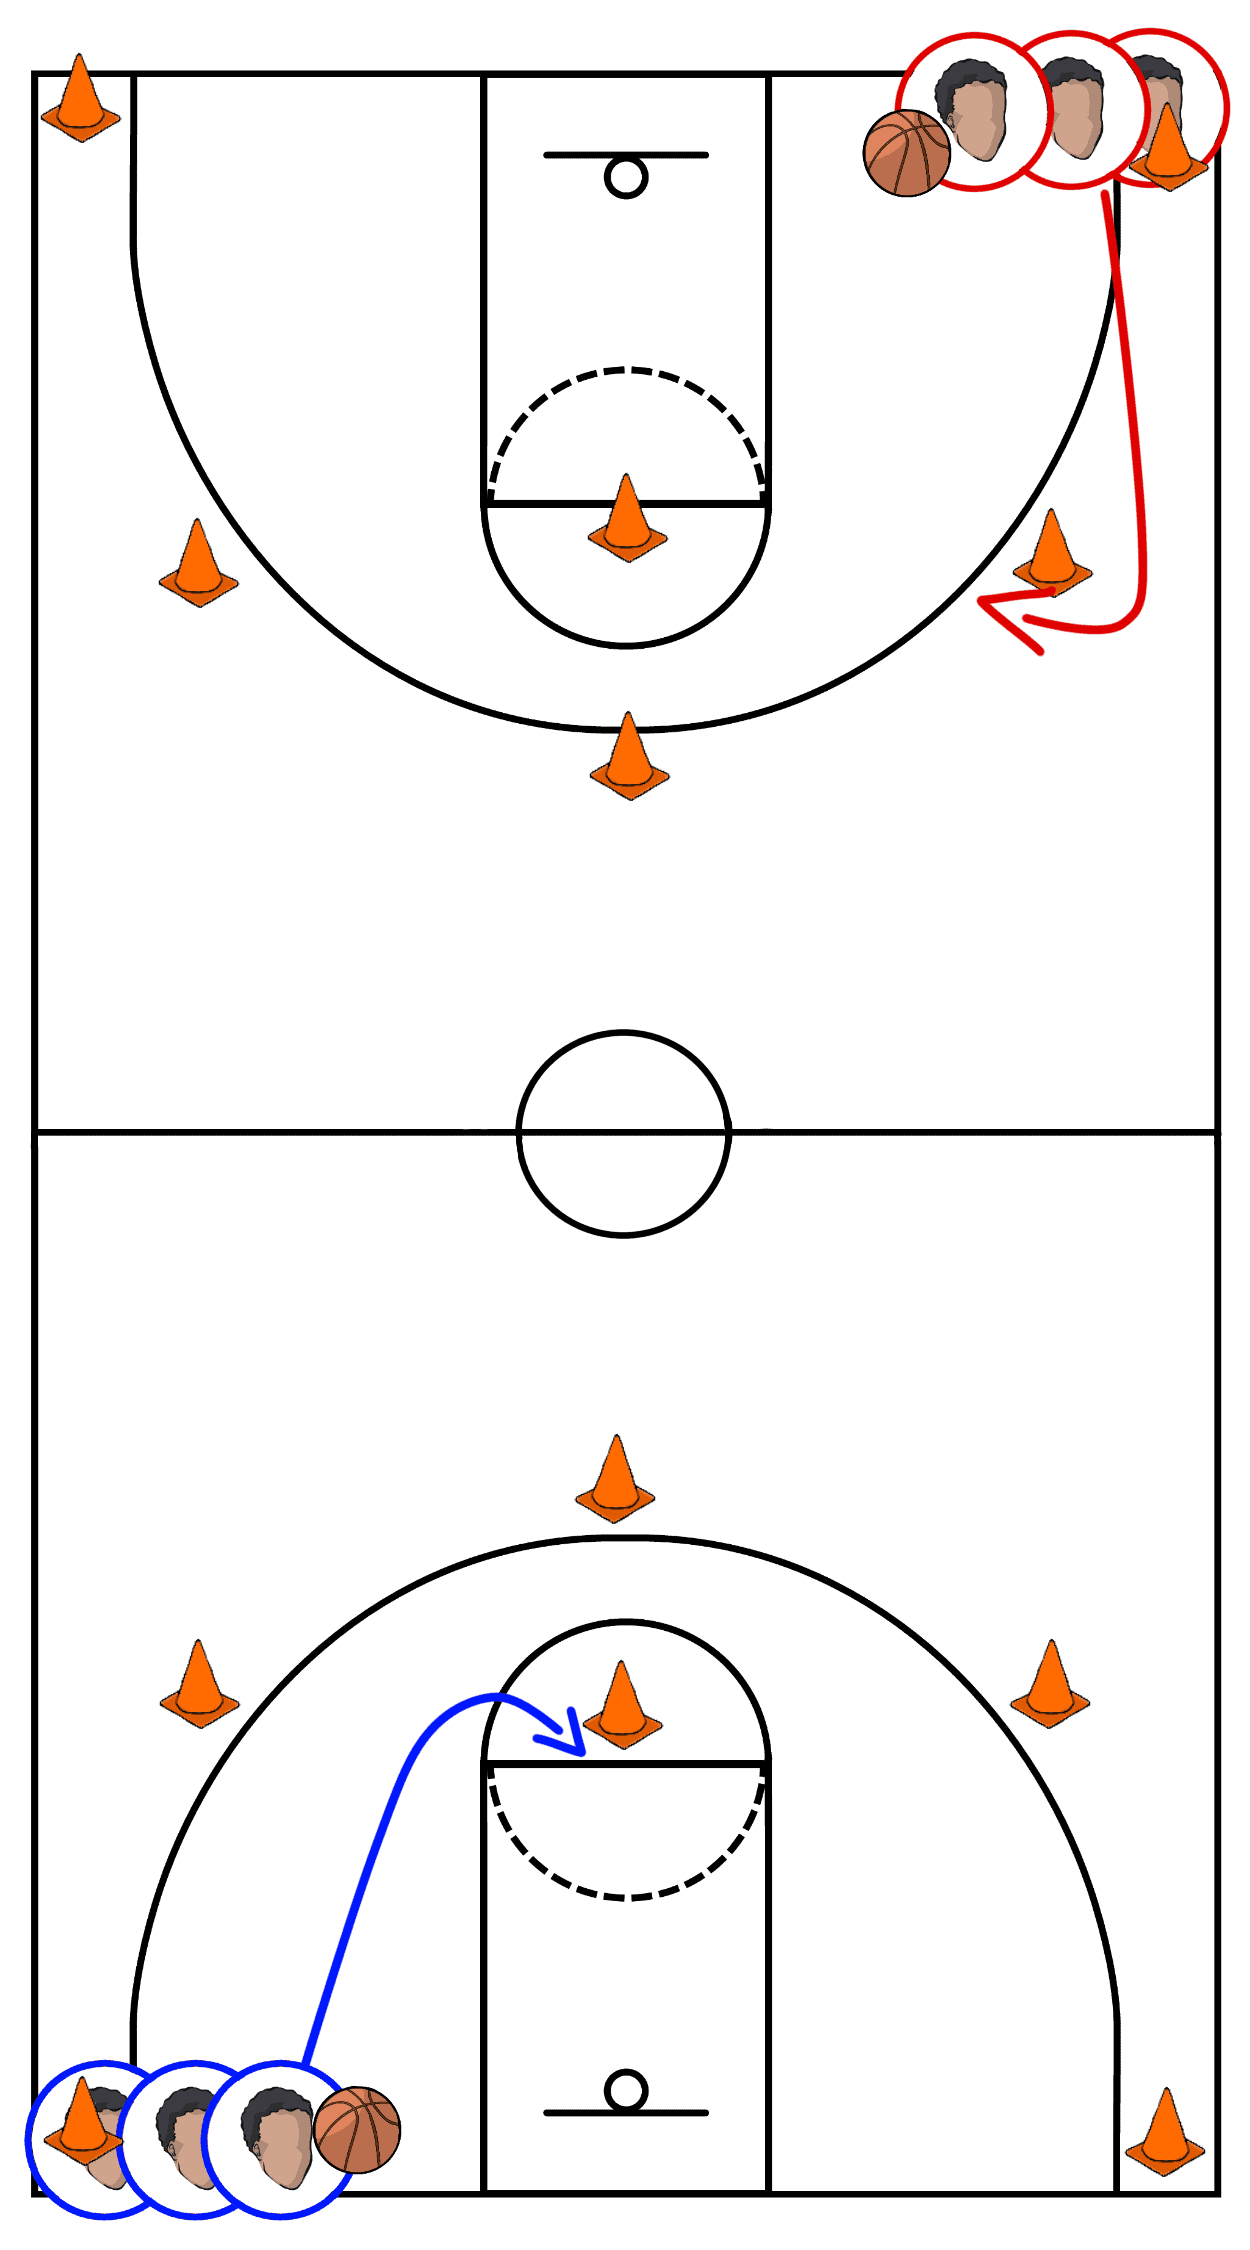 All Star Shootout Basketball Drill for Kids